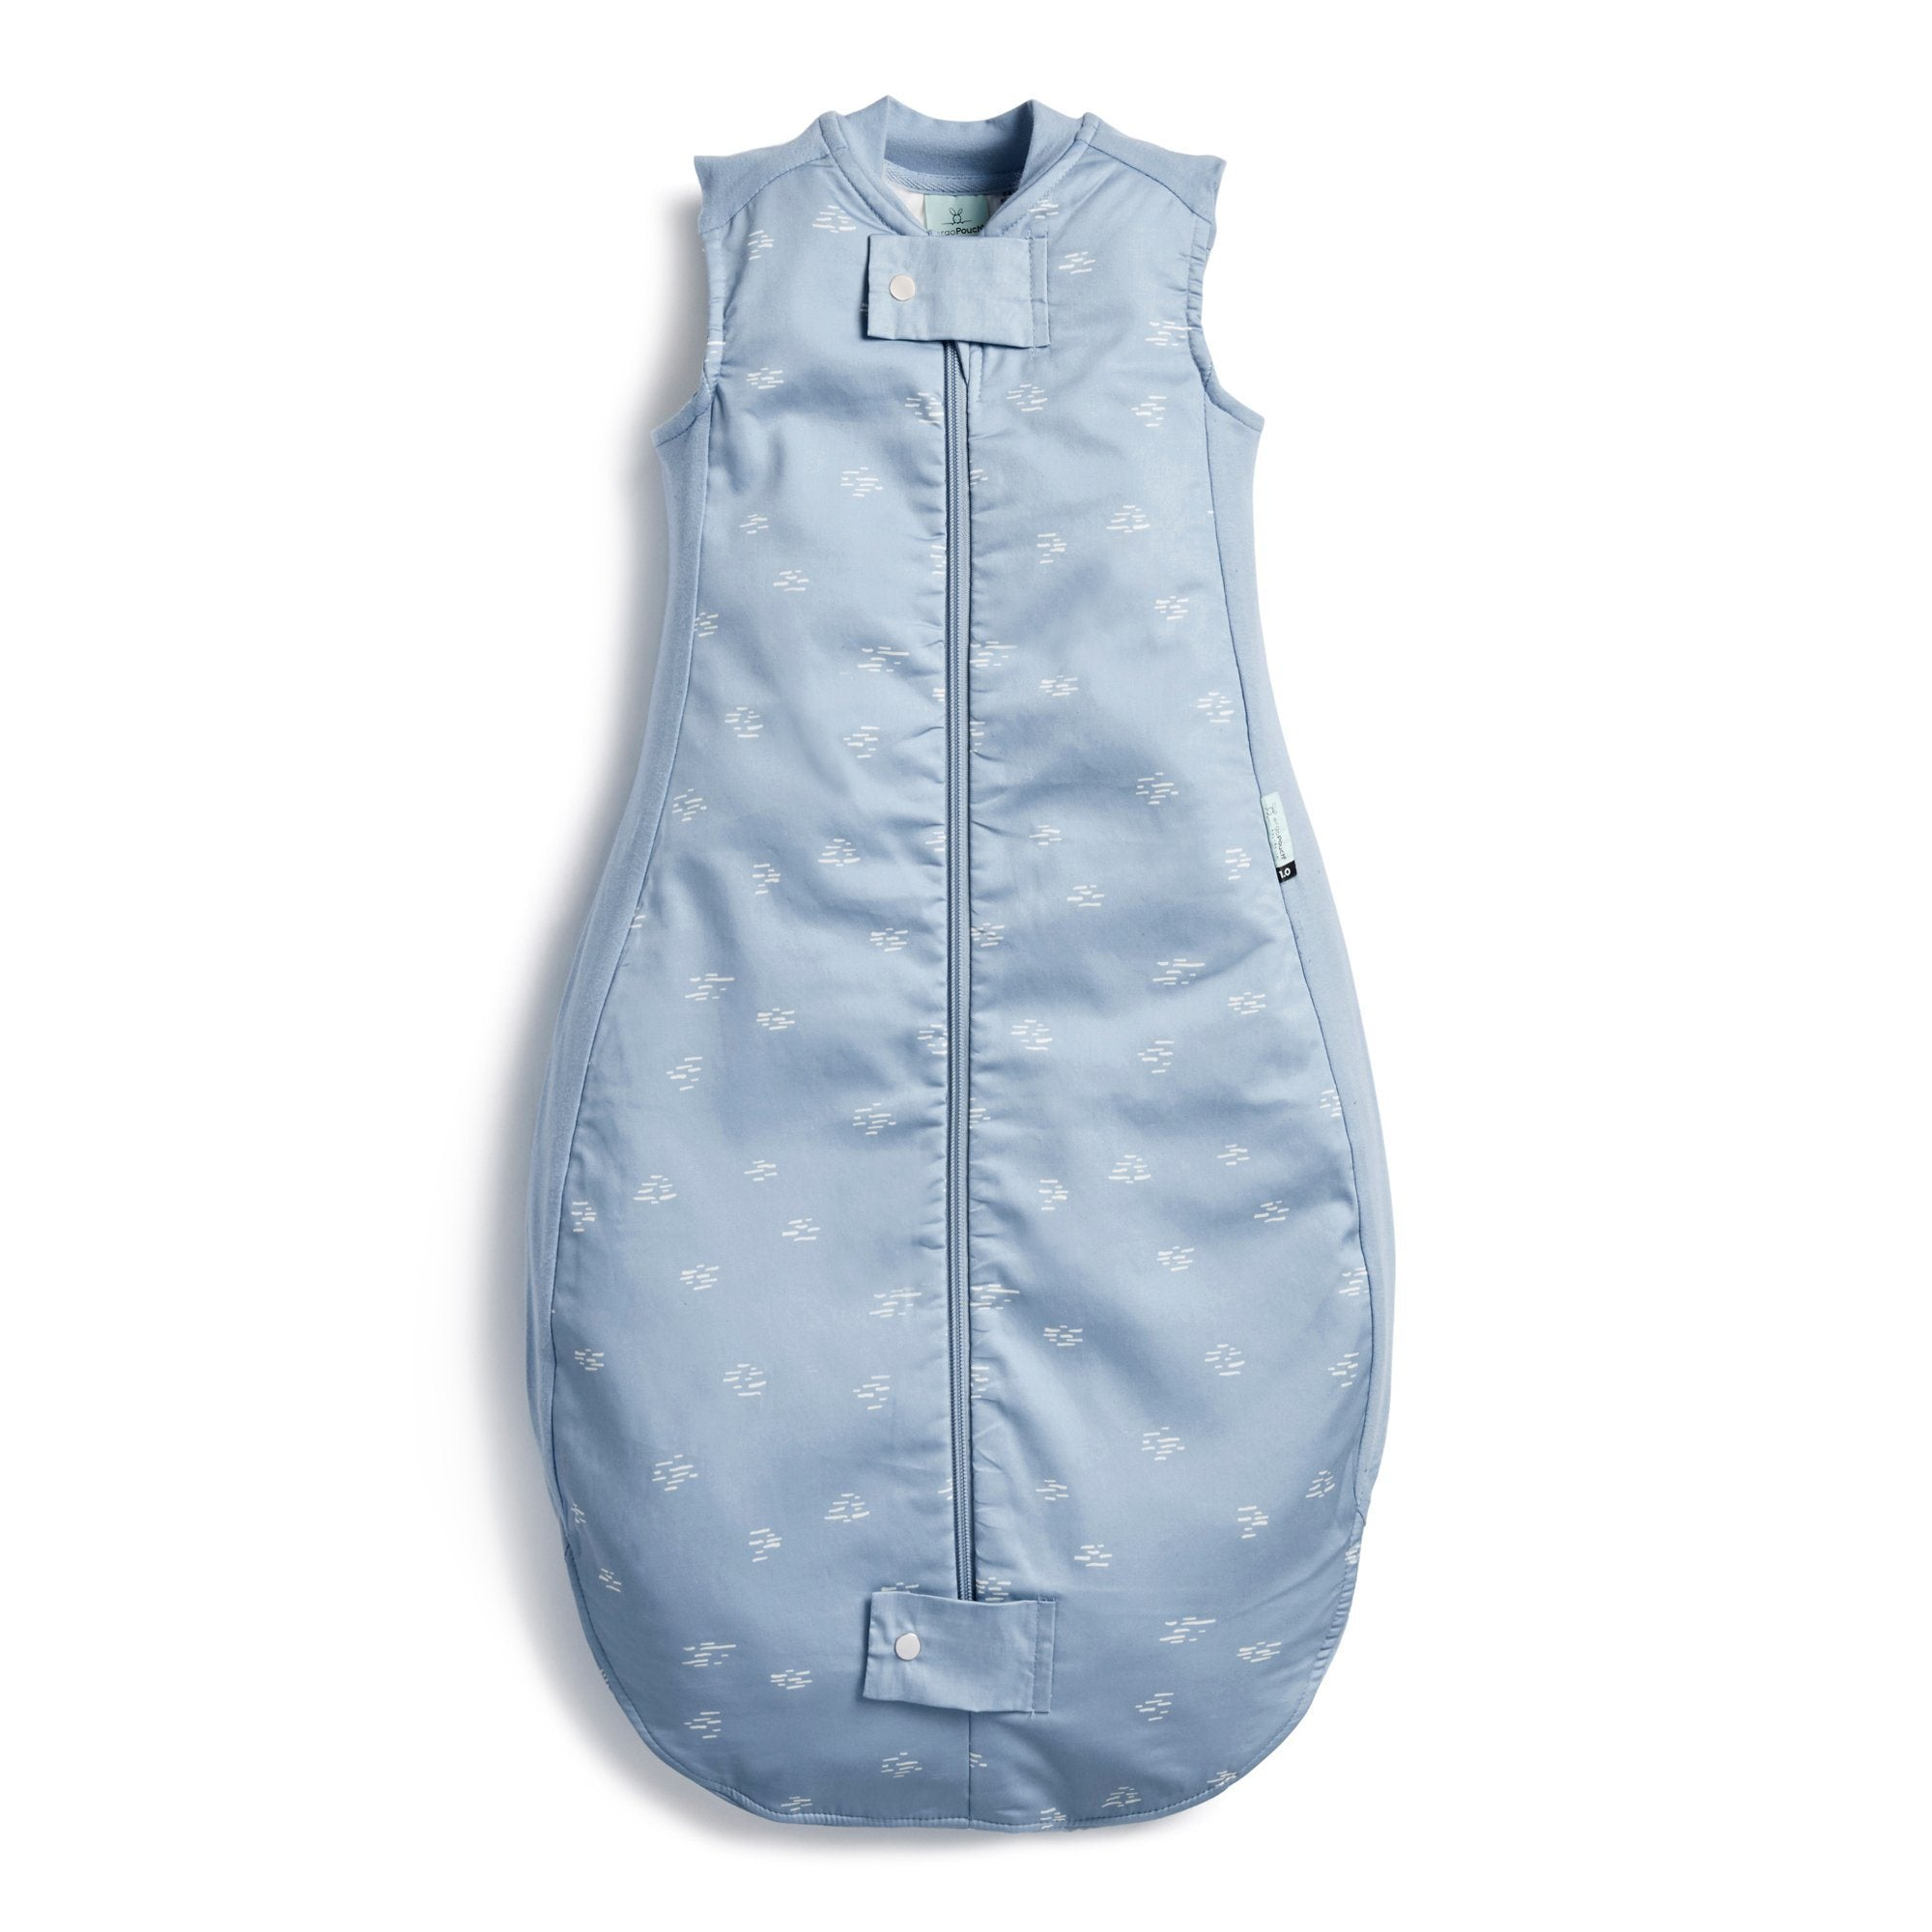 Sheeting Sleeping Bag 1.0 tog (Ripple)